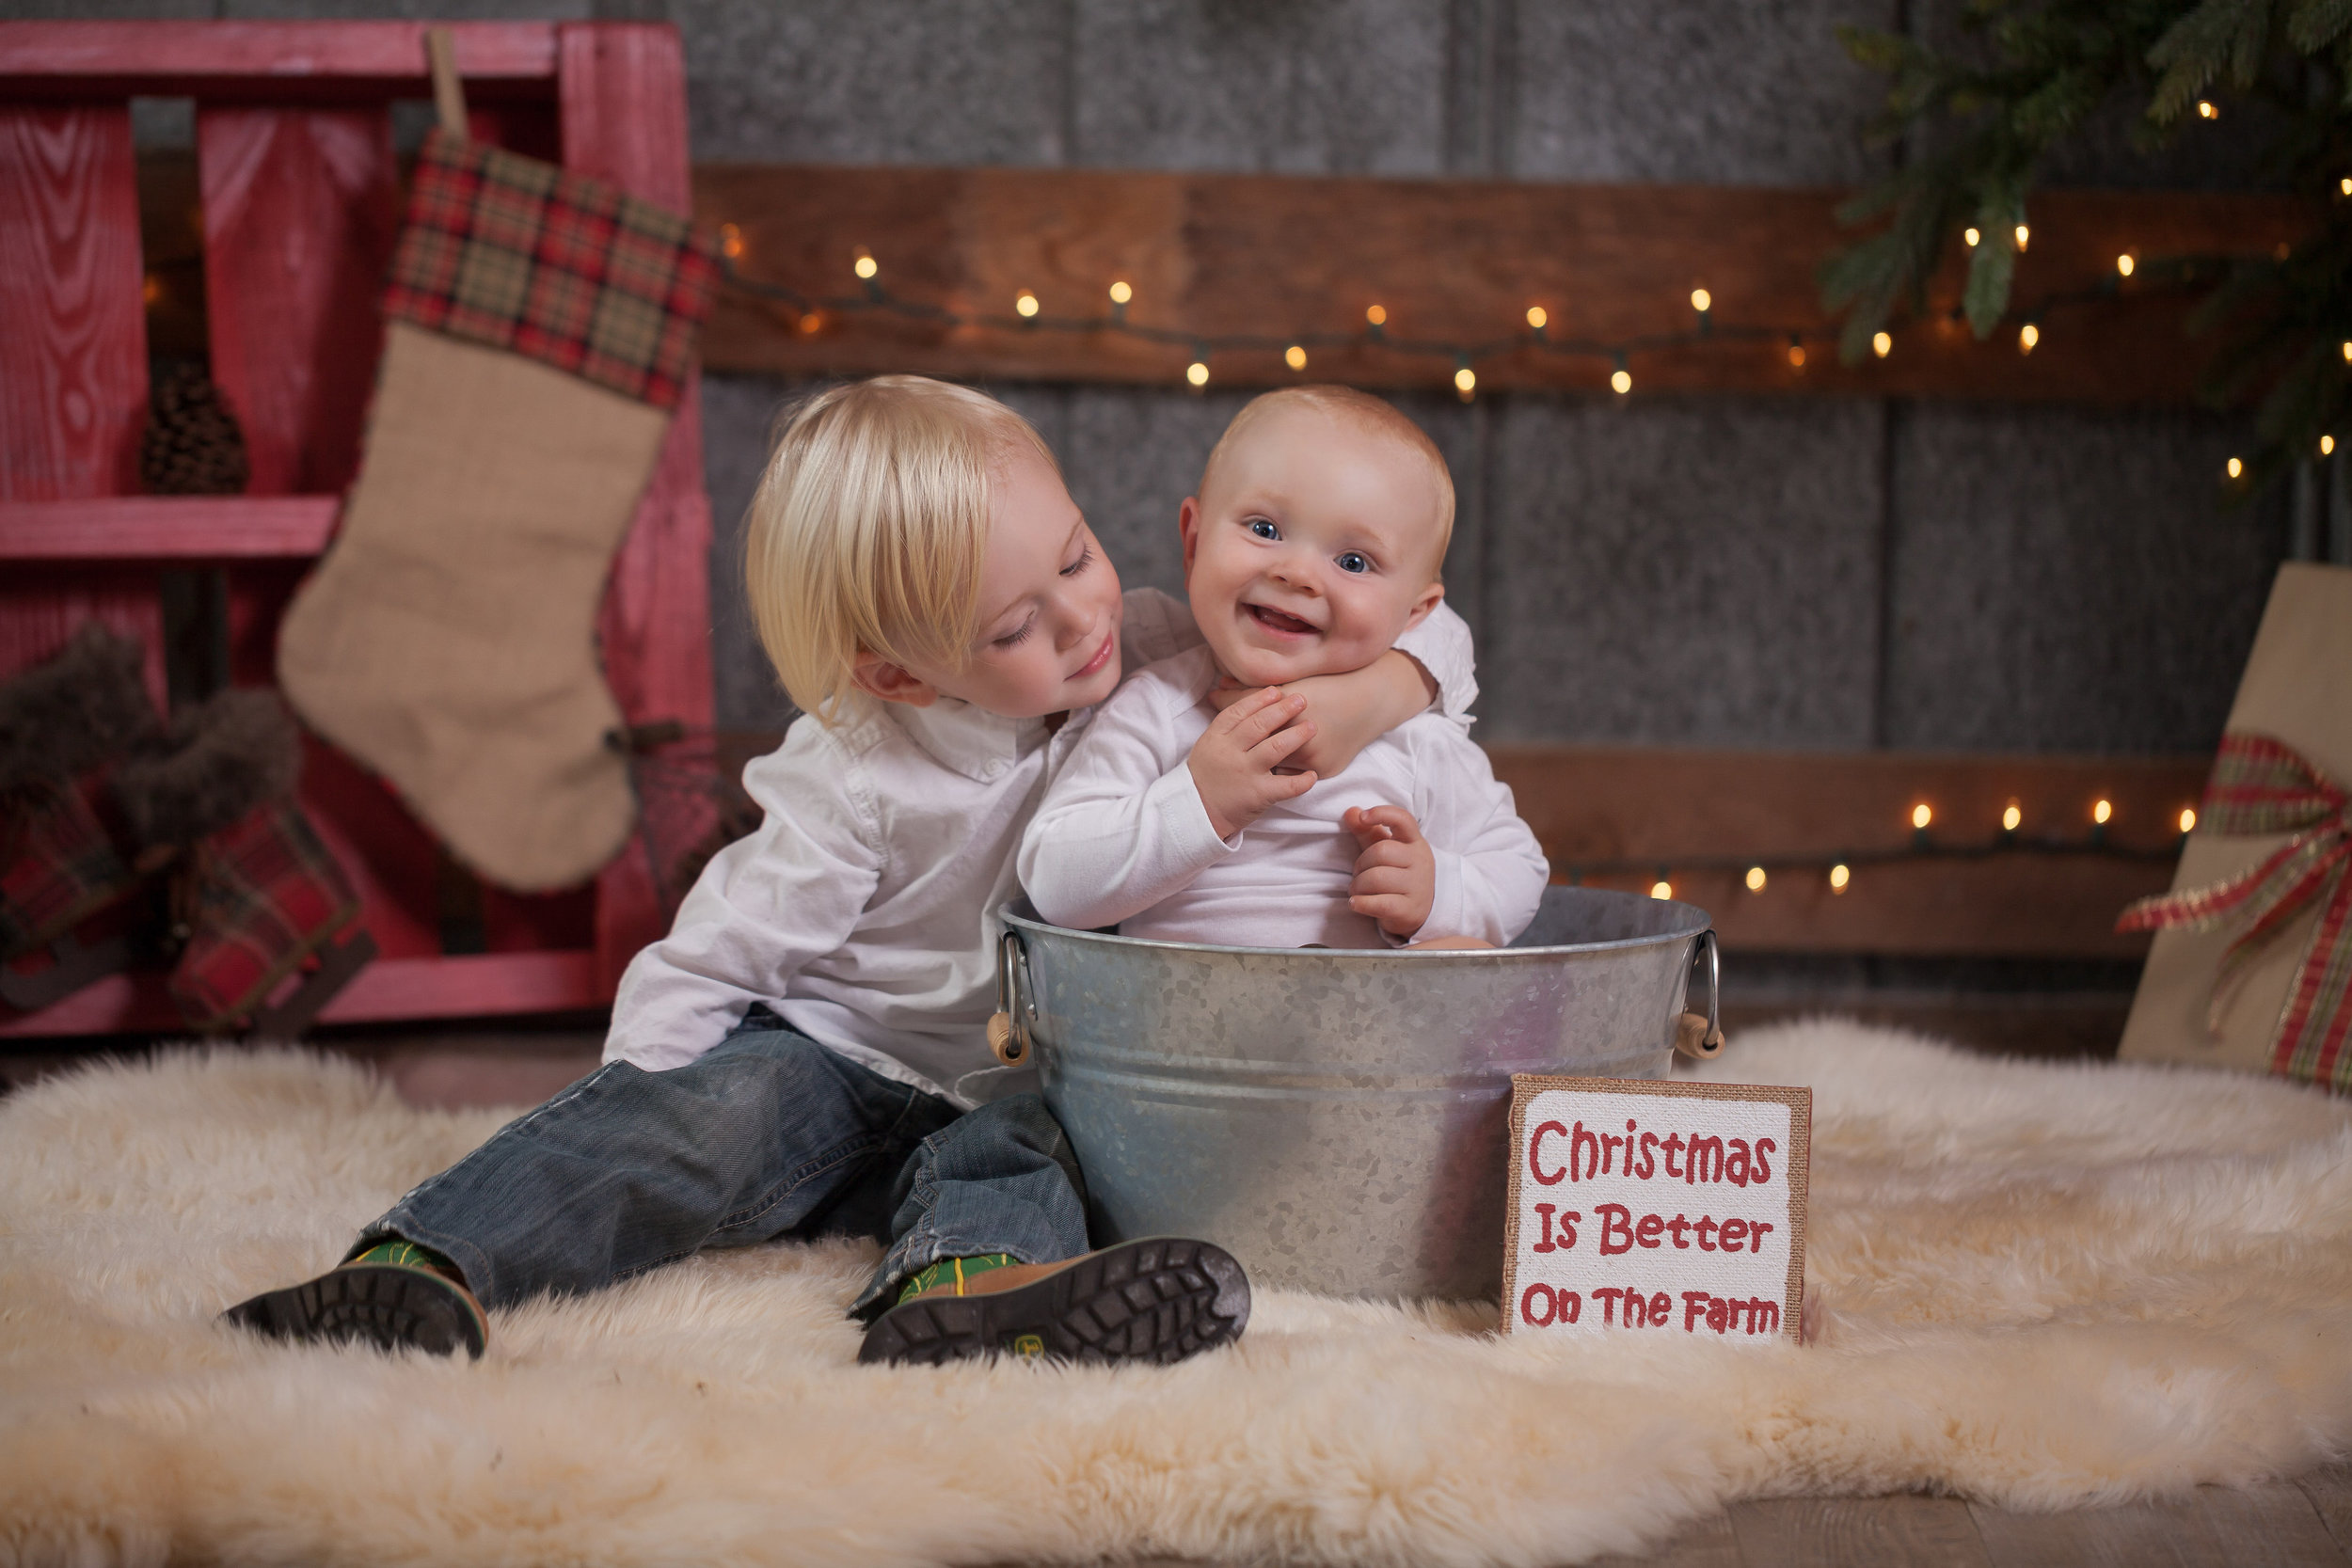 Preview of the Christmas mini photoshoots that we will host in the Pavilion Barn at Rolling Hills 11/5 and 11/12 with  Jamie Lynn Photography